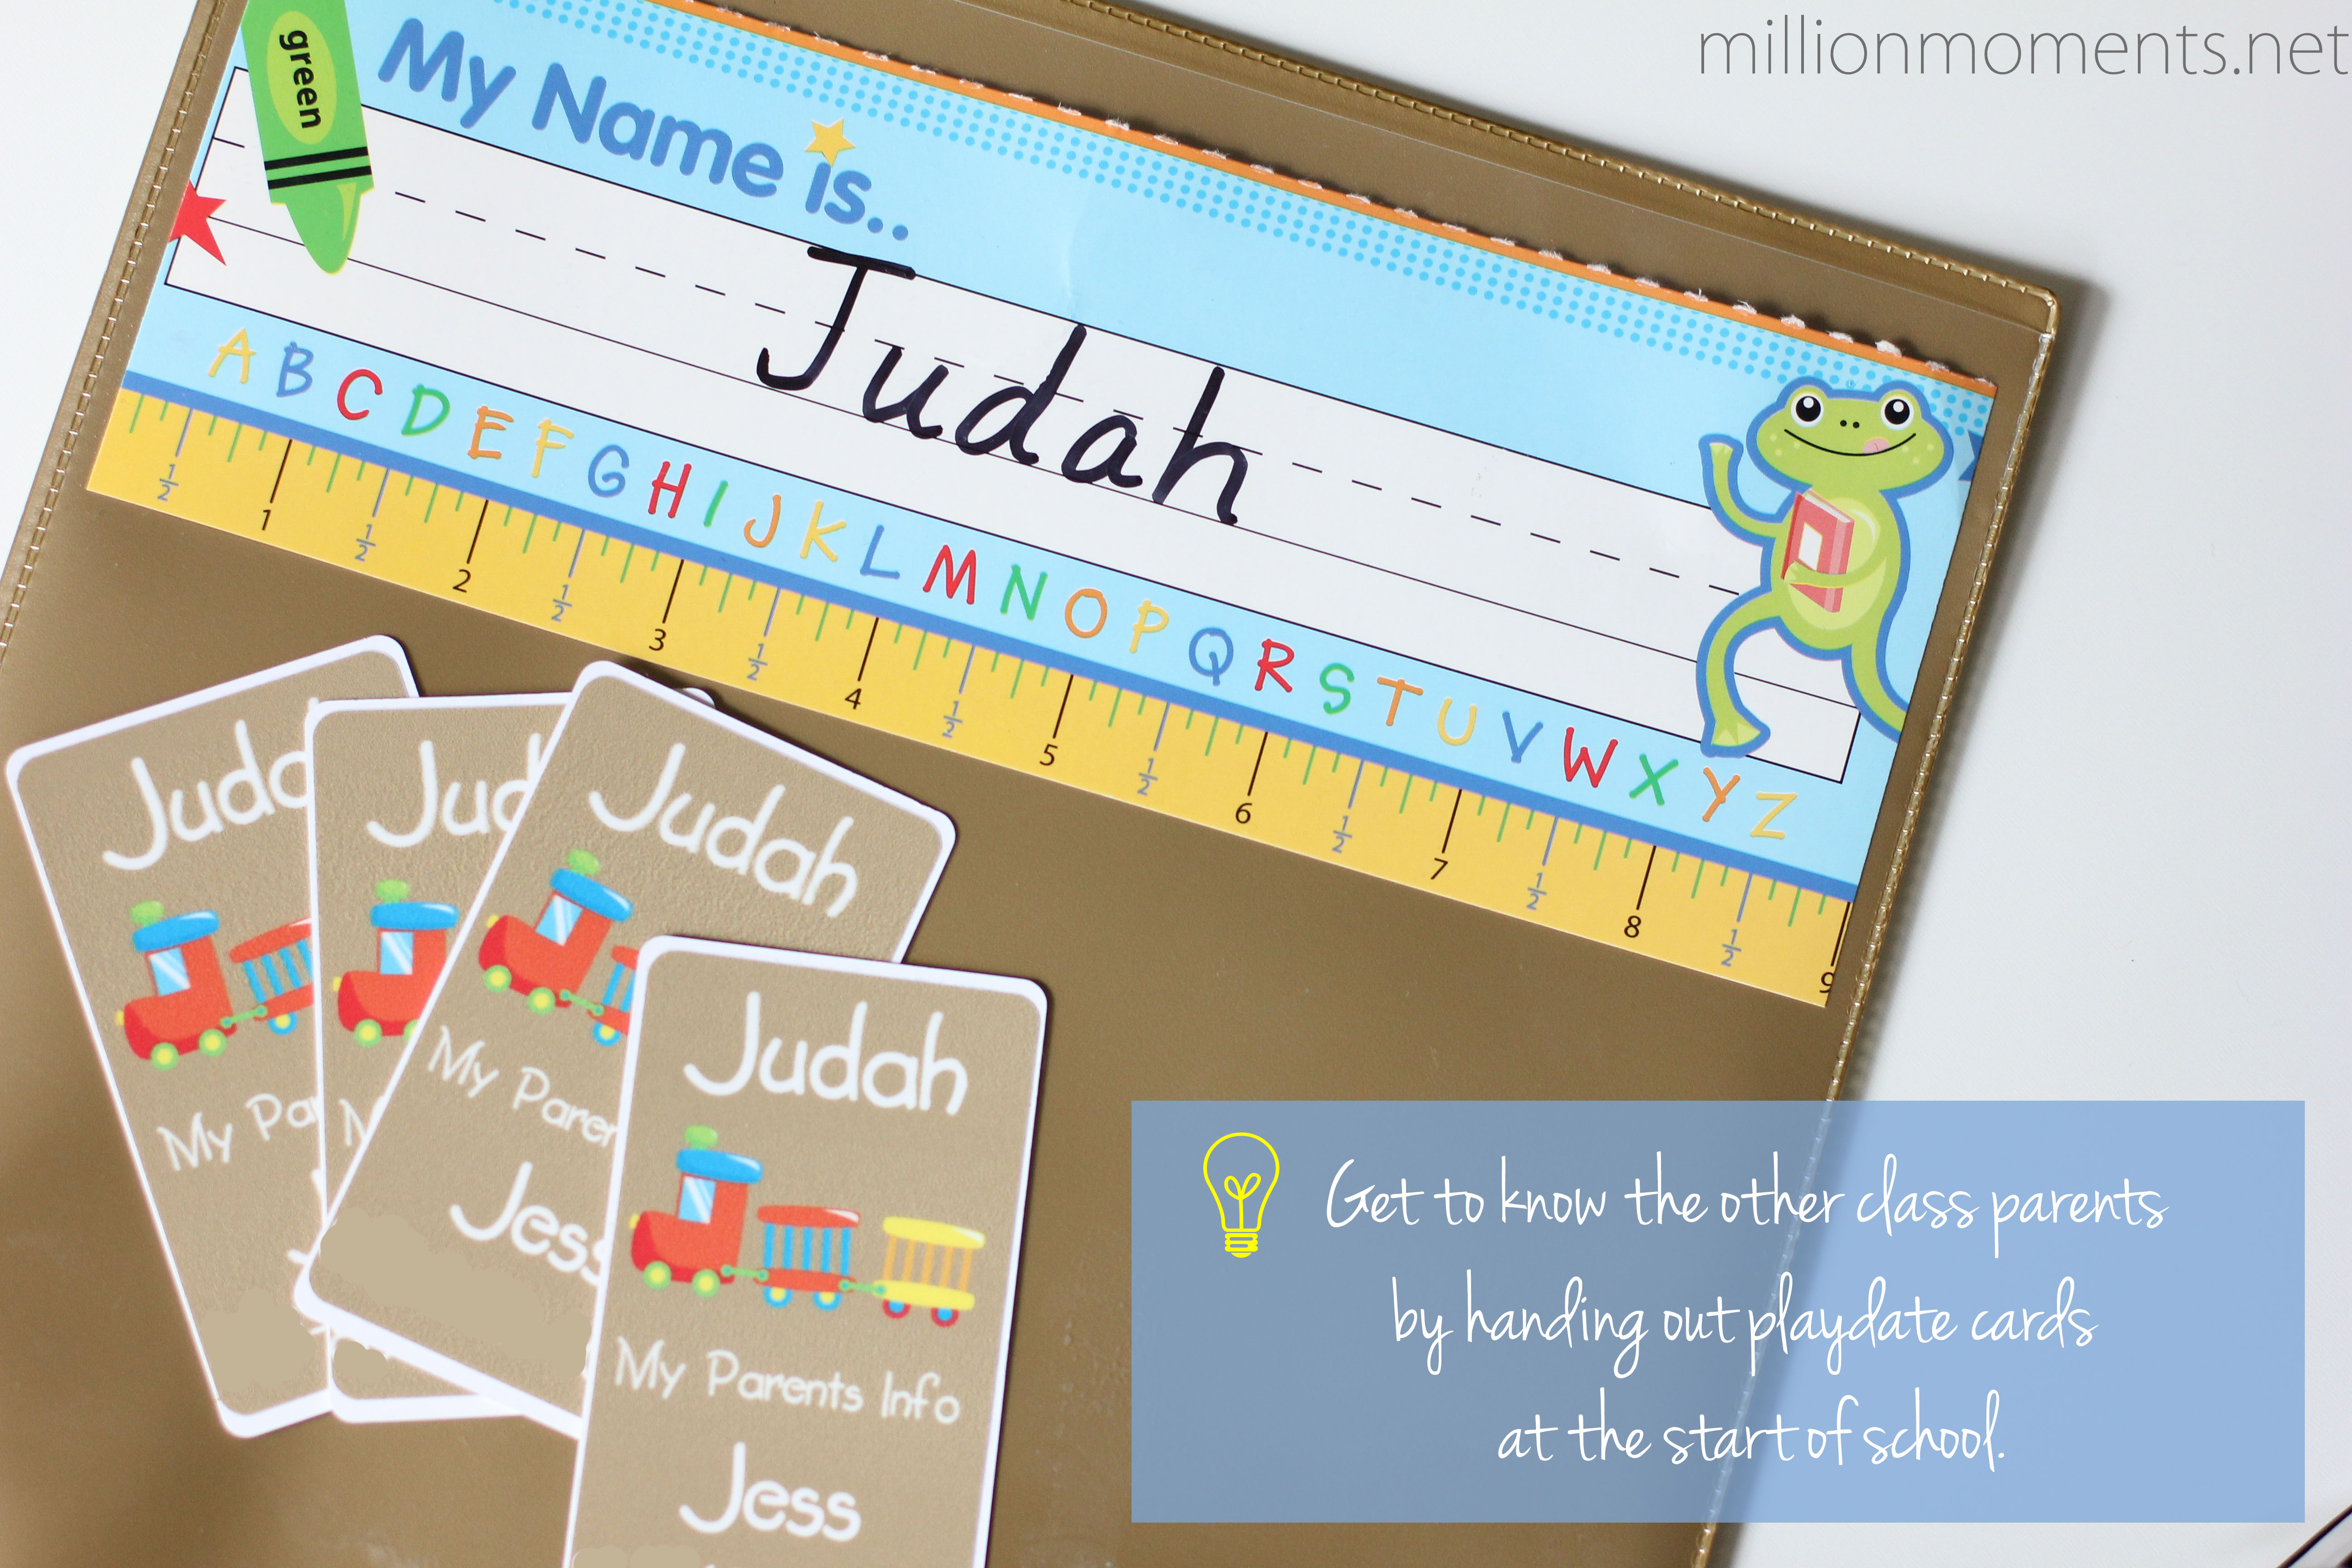 Playdate cards are a must for meeting classmates.